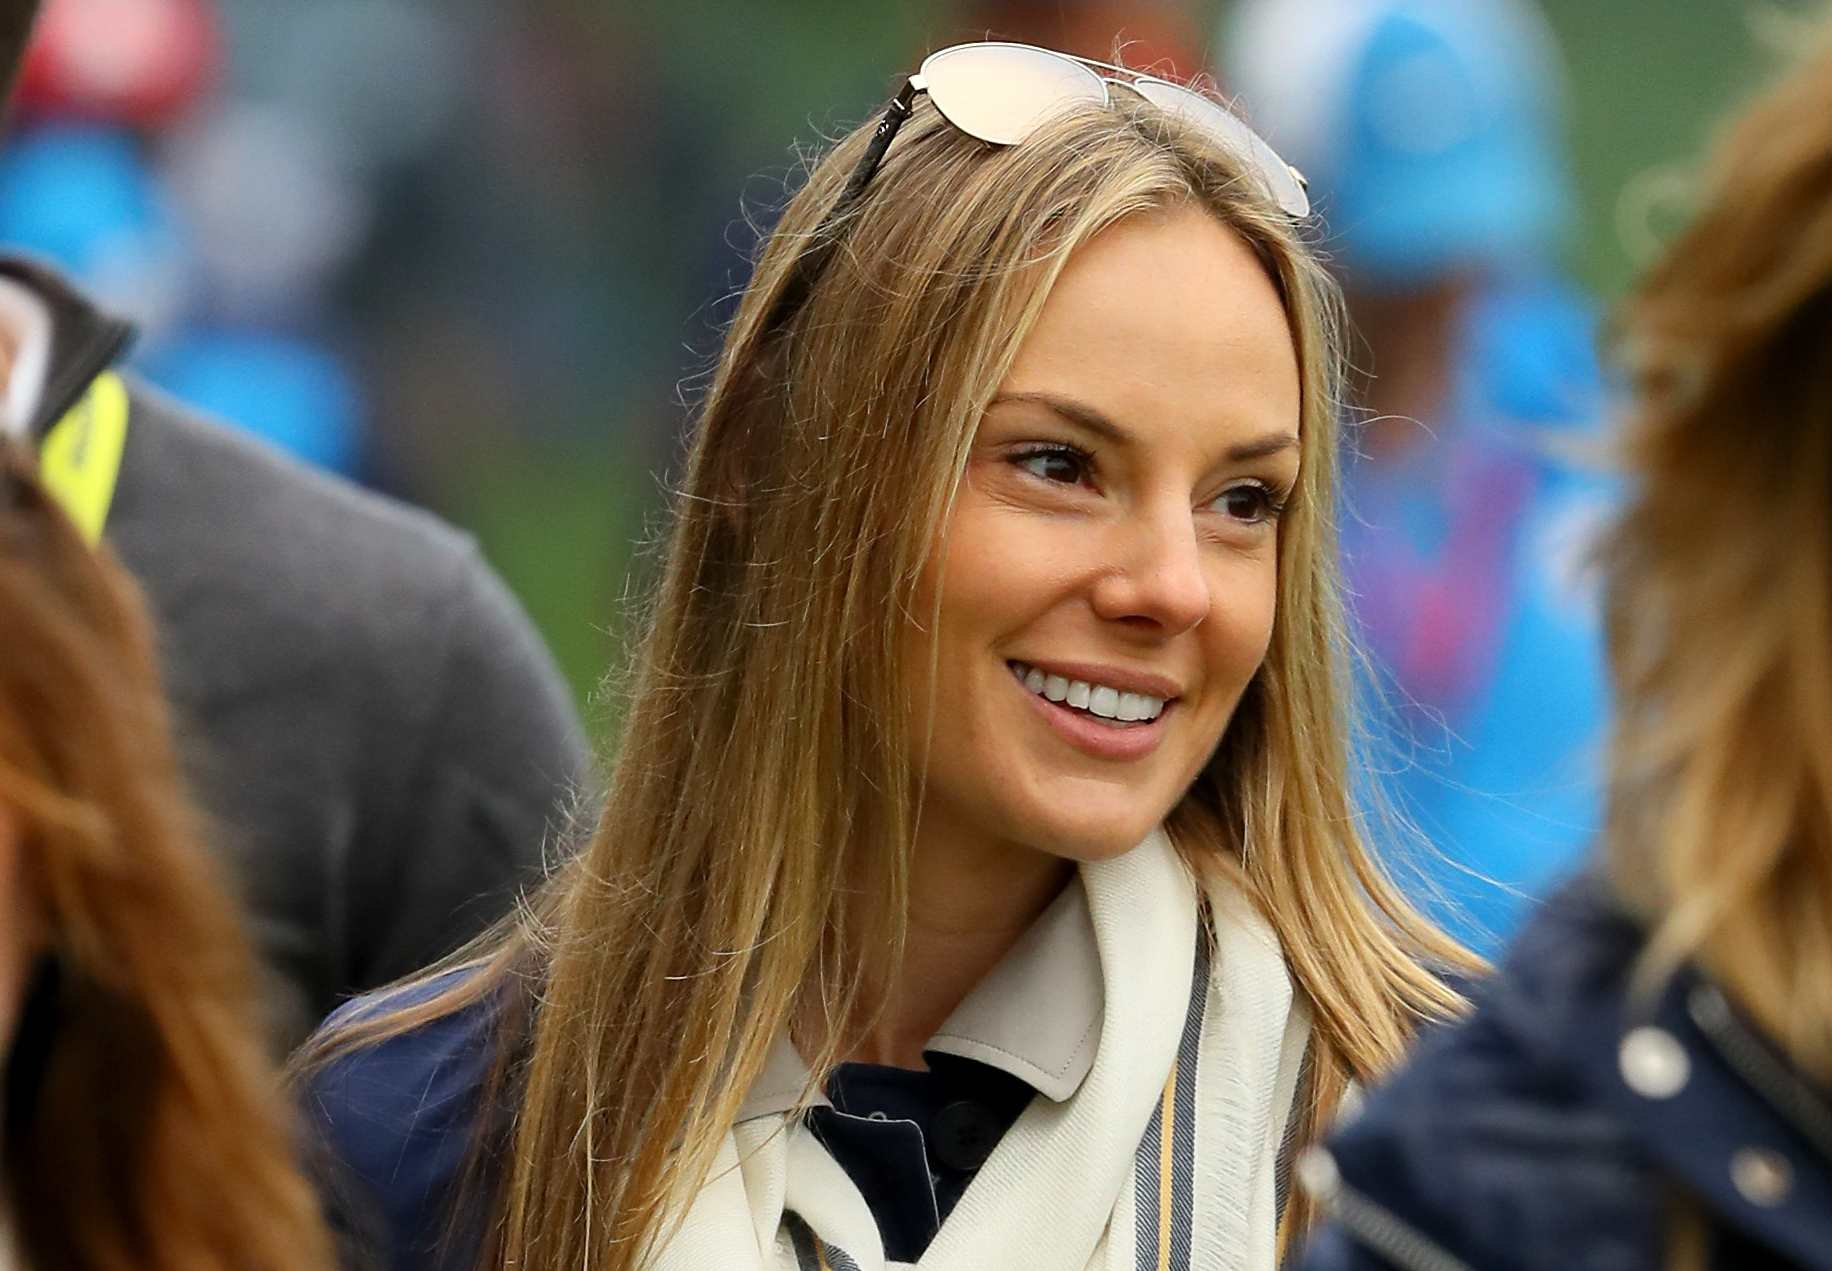 Erica Stoll photographed in 2016 at the Ryder Cup.